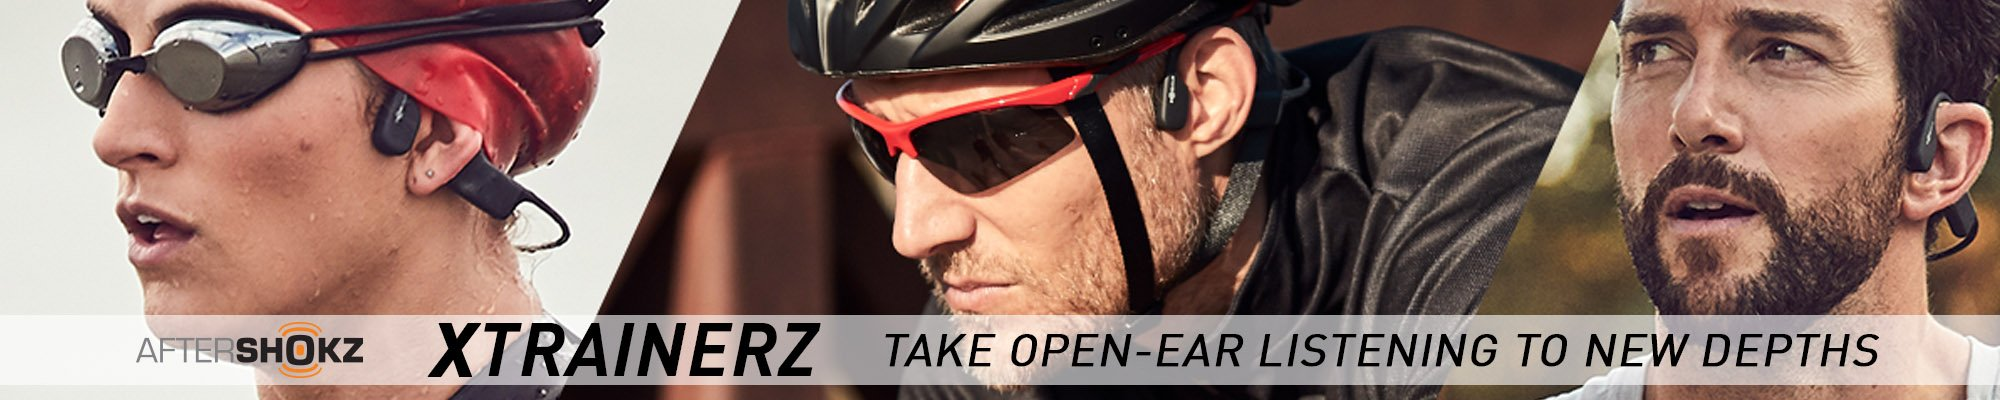 The AfterShokz Xtrainerz - New waterproof headphones